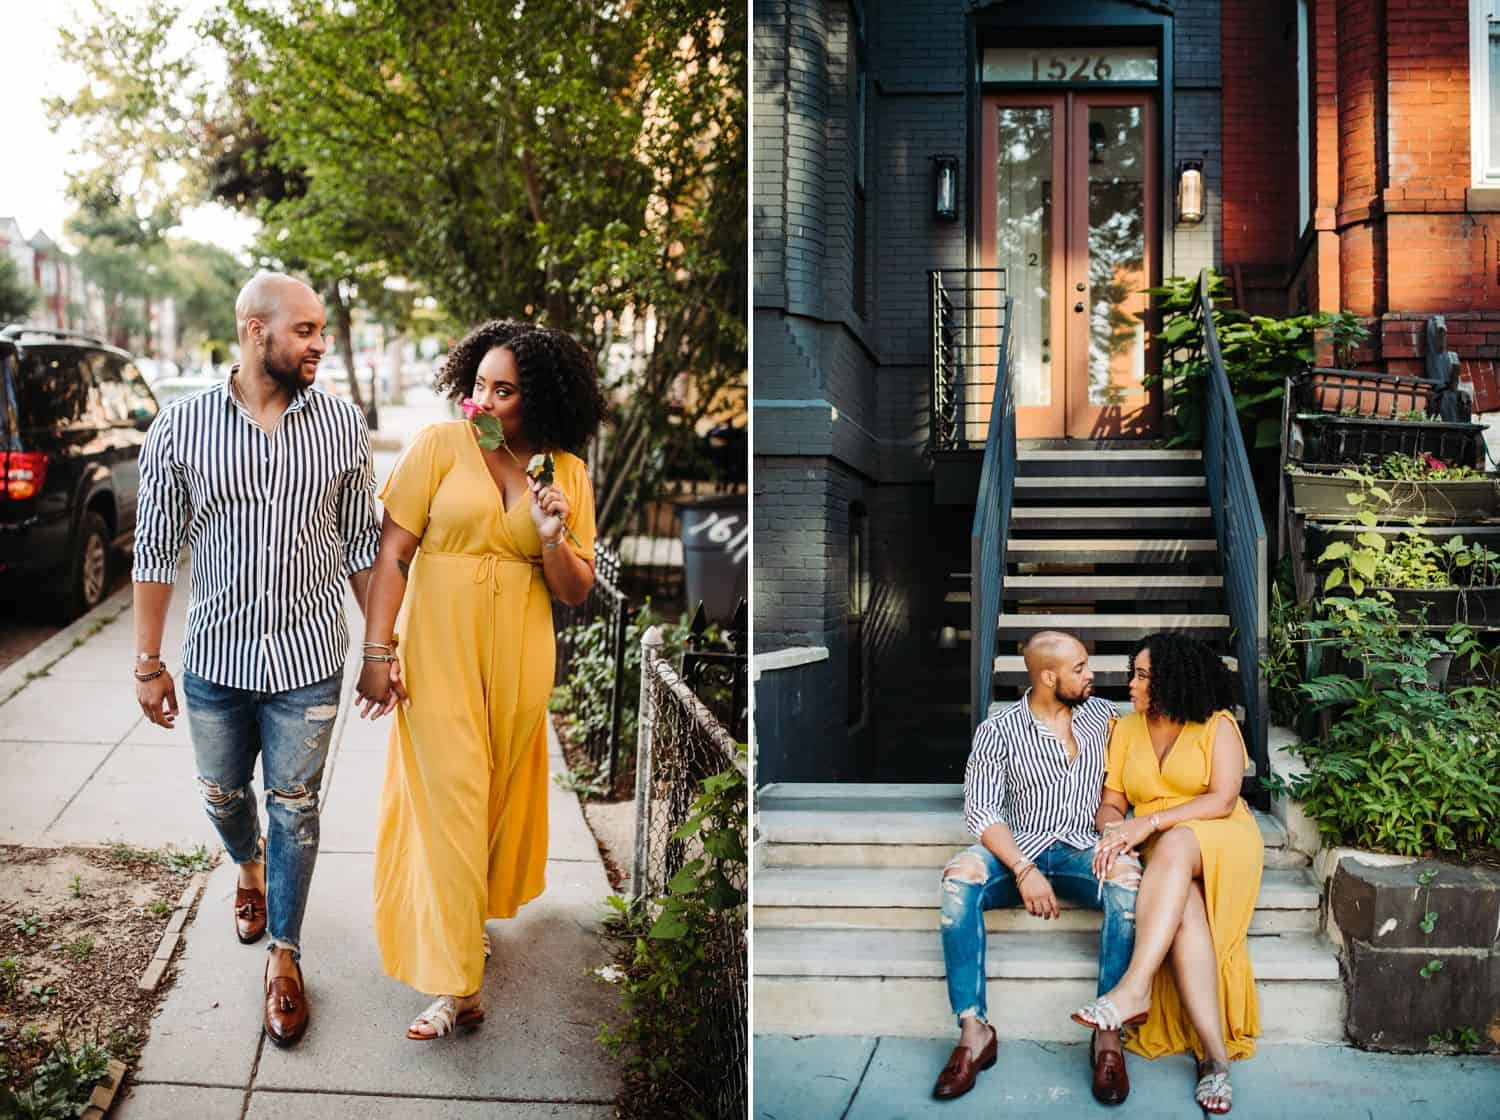 Black couple photographed in an Atlanta neighborhood and outside their Airbnb